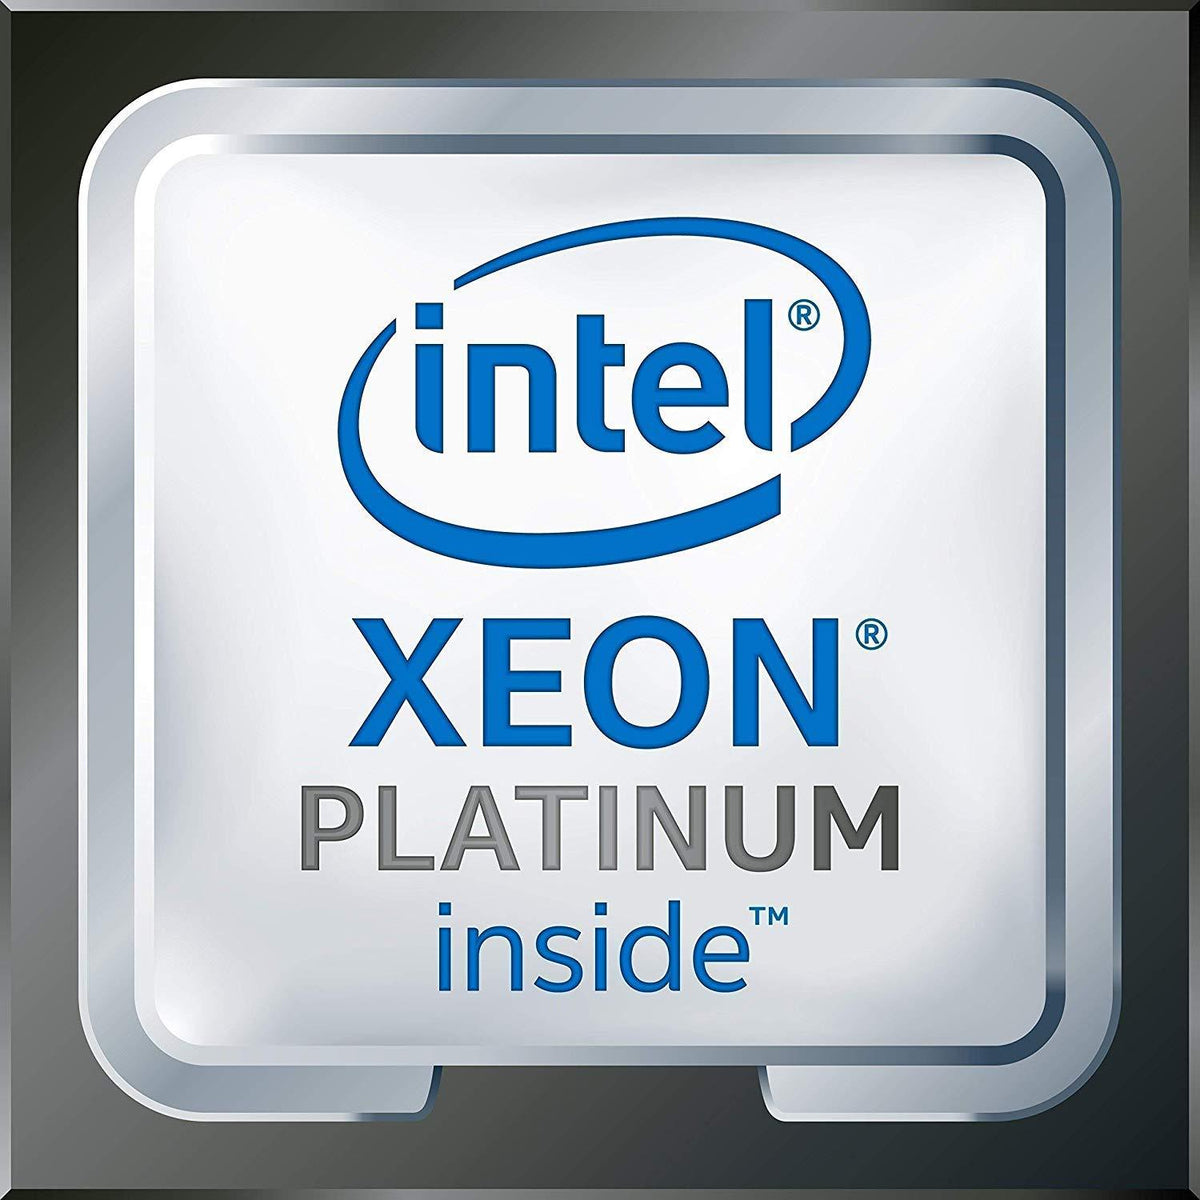 SR3B0 - Intel Xeon-Platinum 8160 (2.1GHz/24-core/145W) Processor